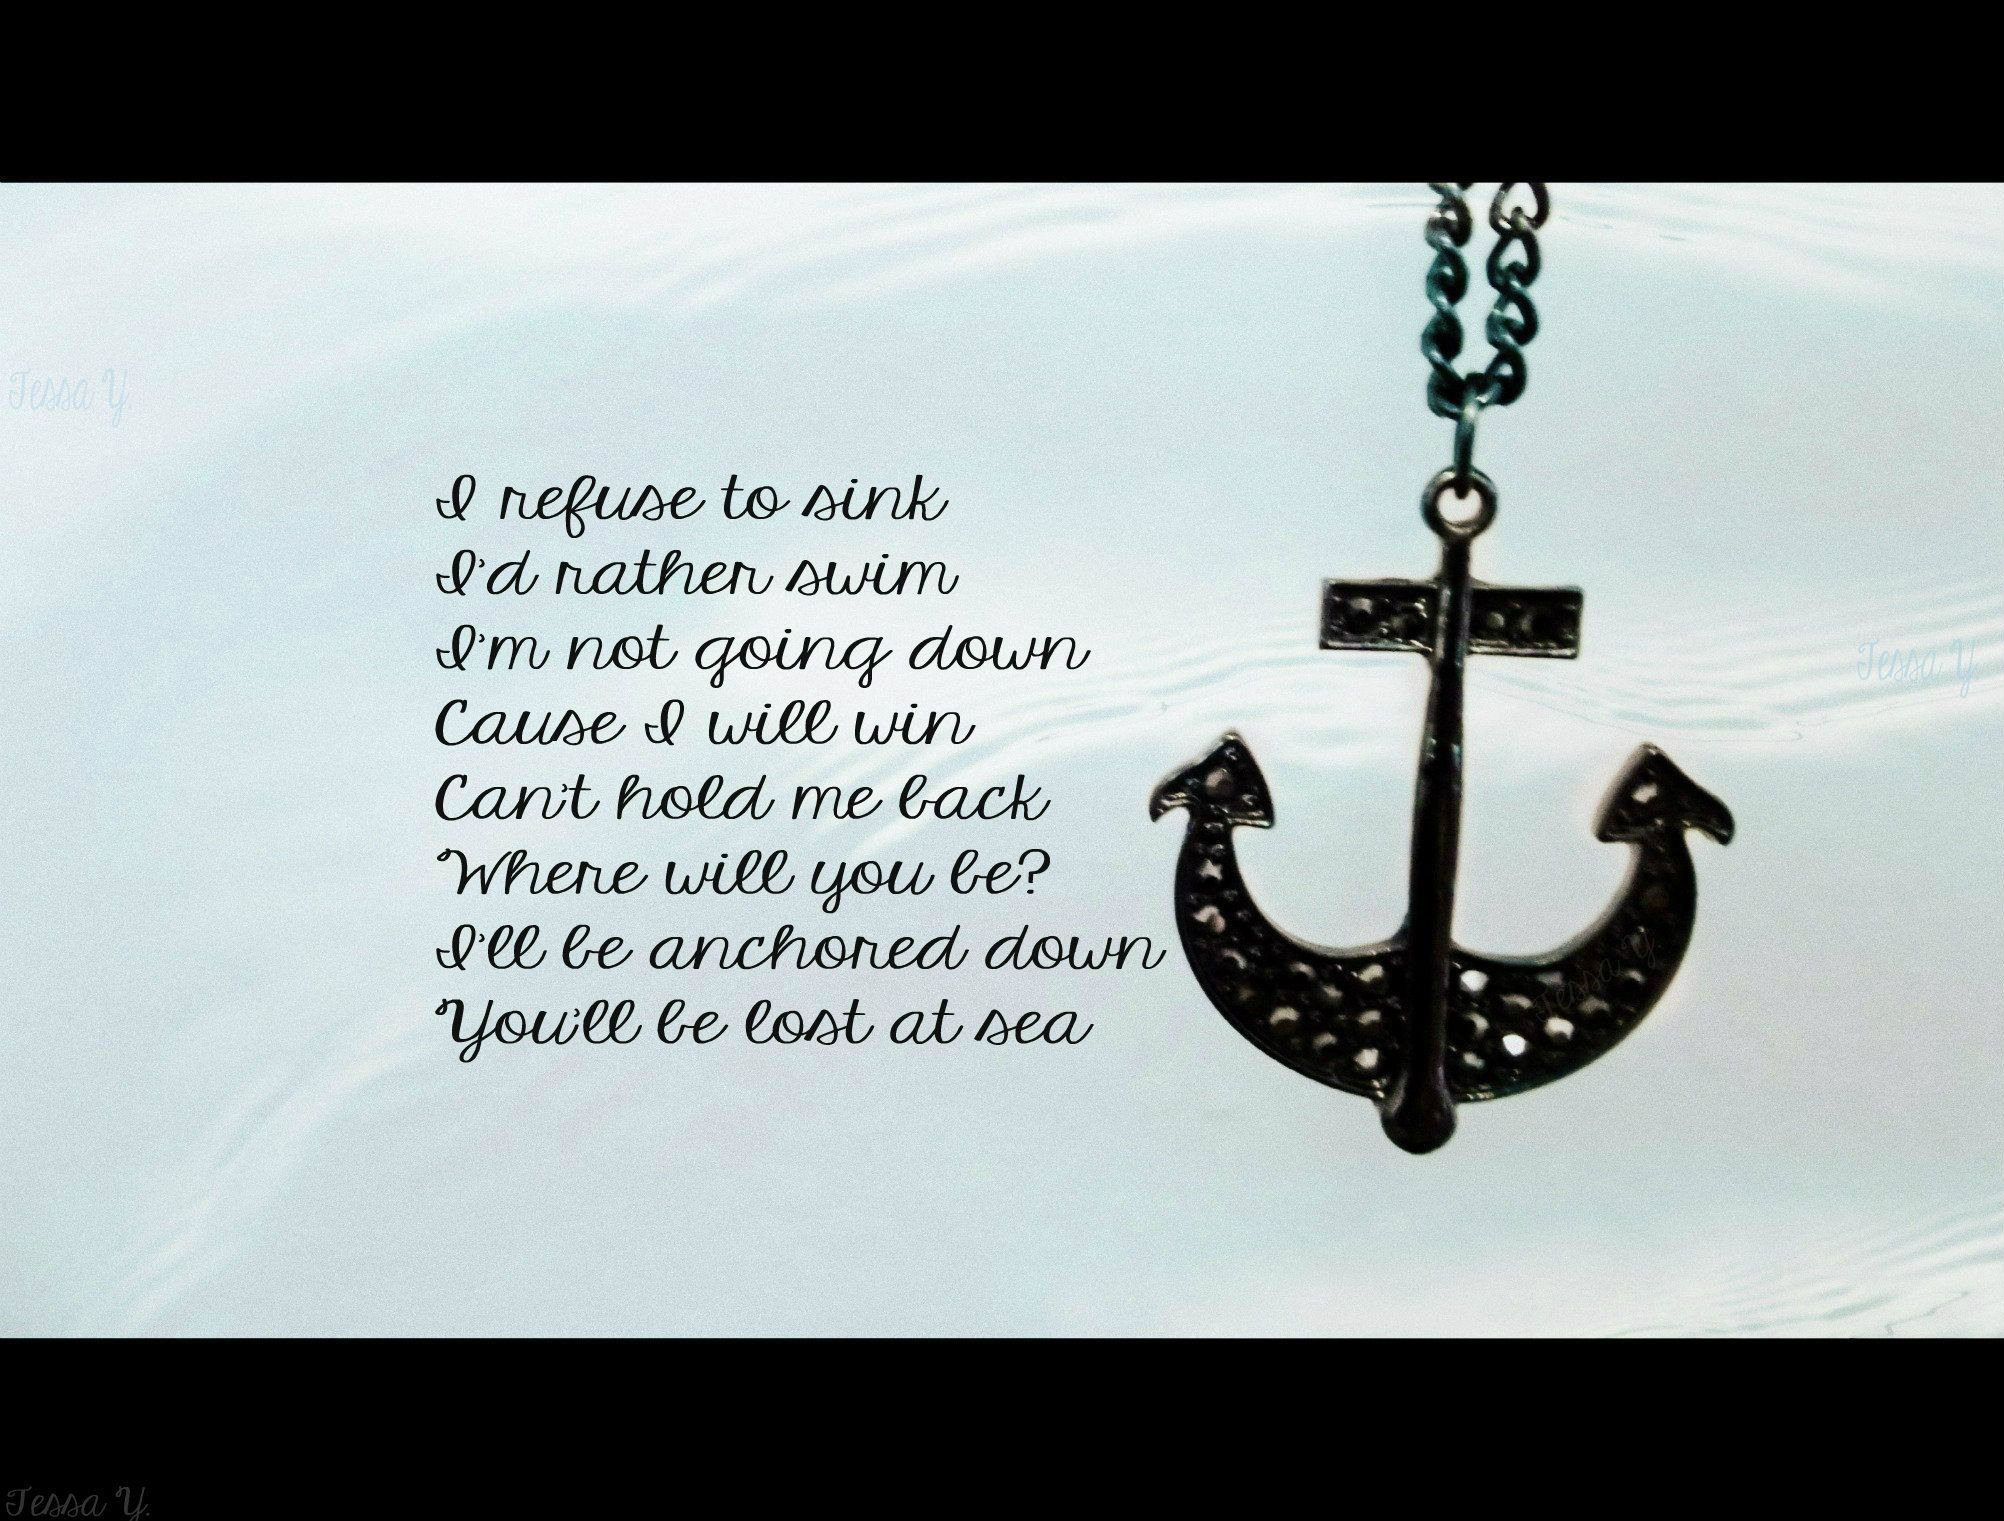 Anchor Love Quotes Botdf Quote  Refuse To Sink  Anchor Quote  Botdf Lyrics